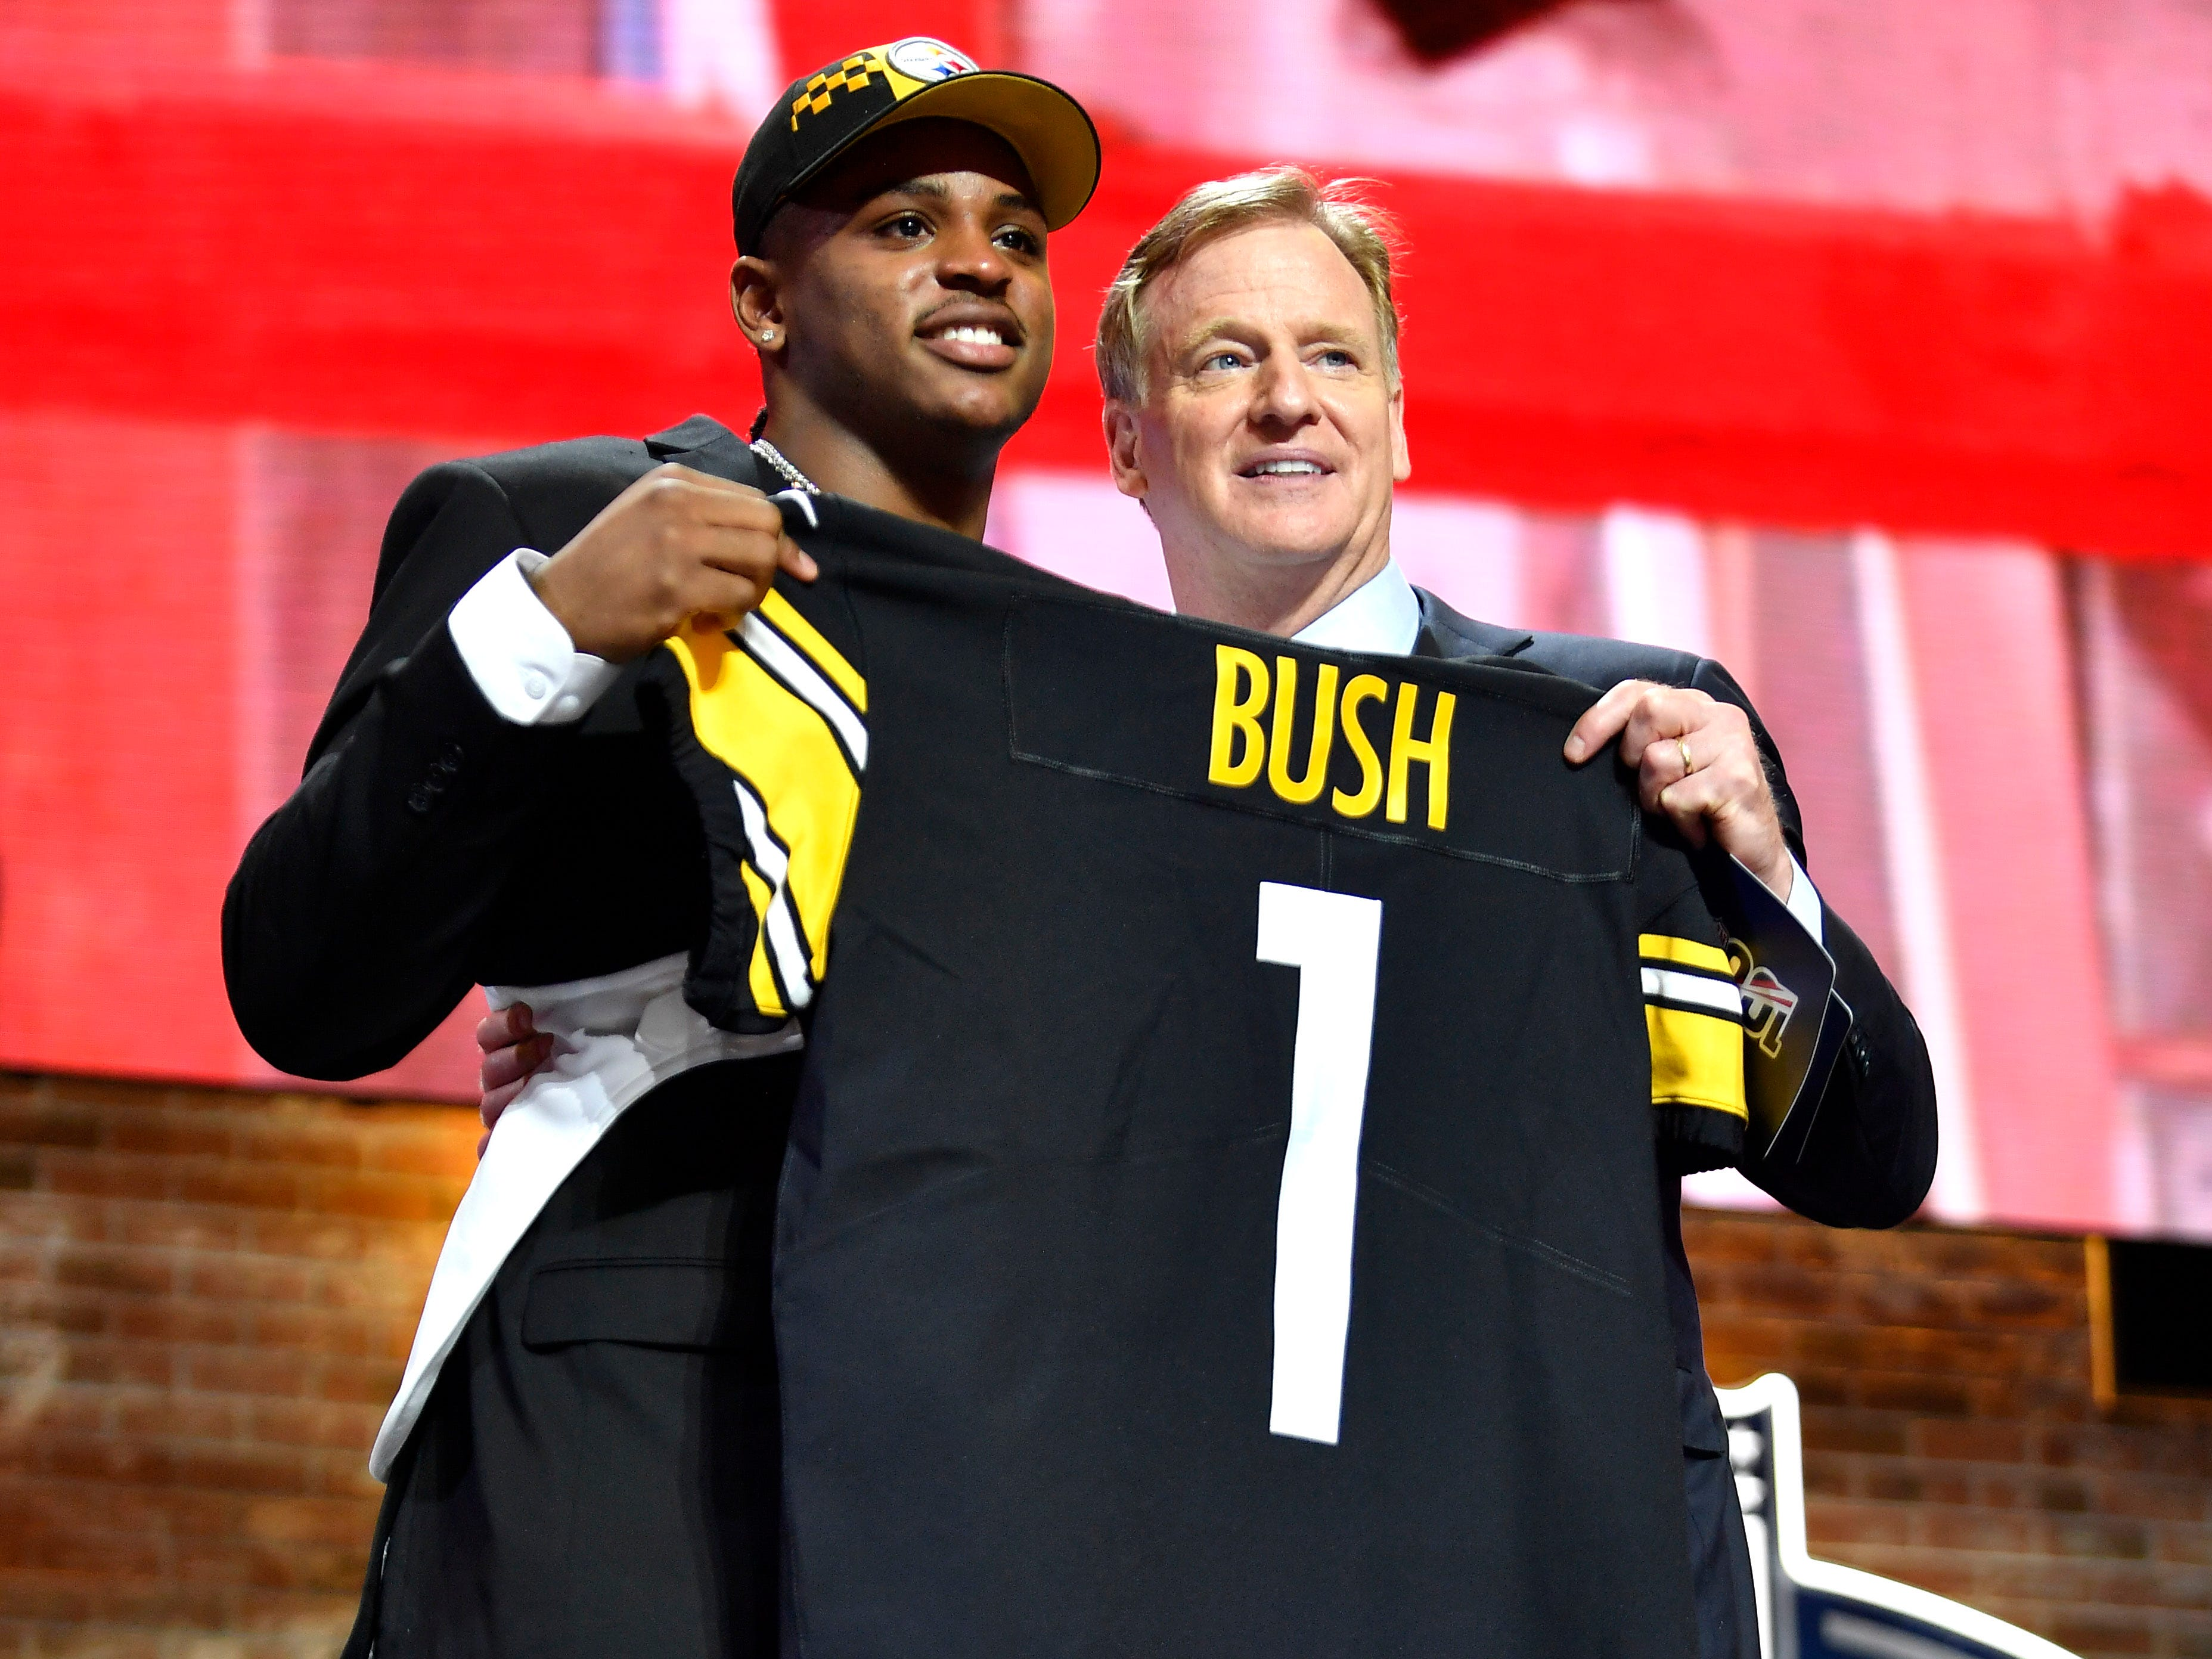 Devin Bush holds his new Steelers jersey with NFL Commissioner Roger Goodell during the first round of the NFL Draft Thursday, April 25, 2019, in Nashville, Tenn.